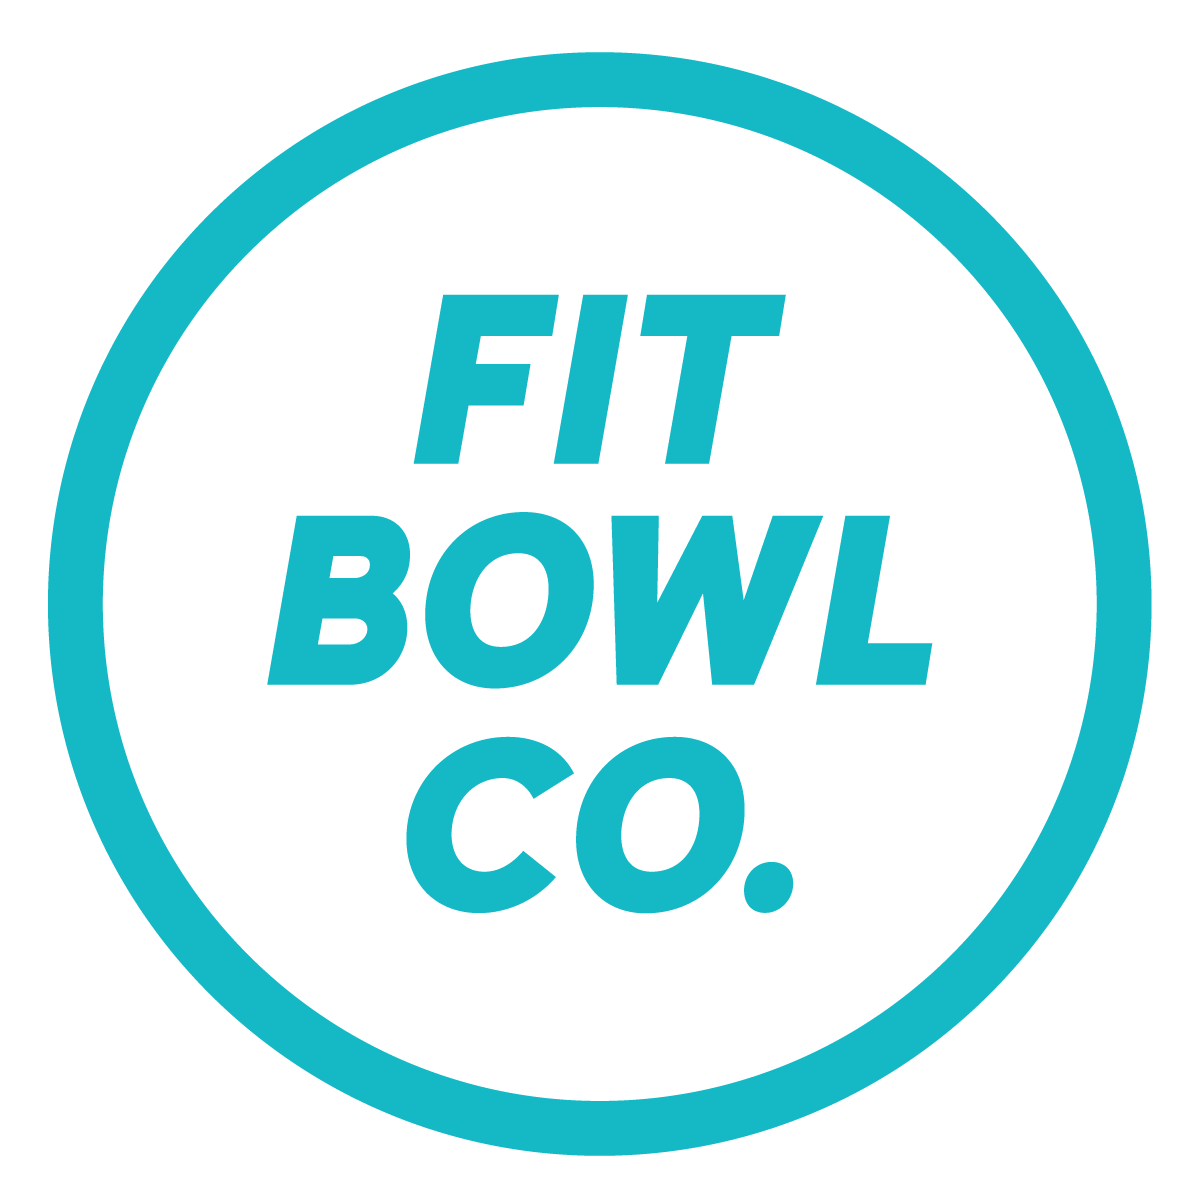 Fit Bowl Co.